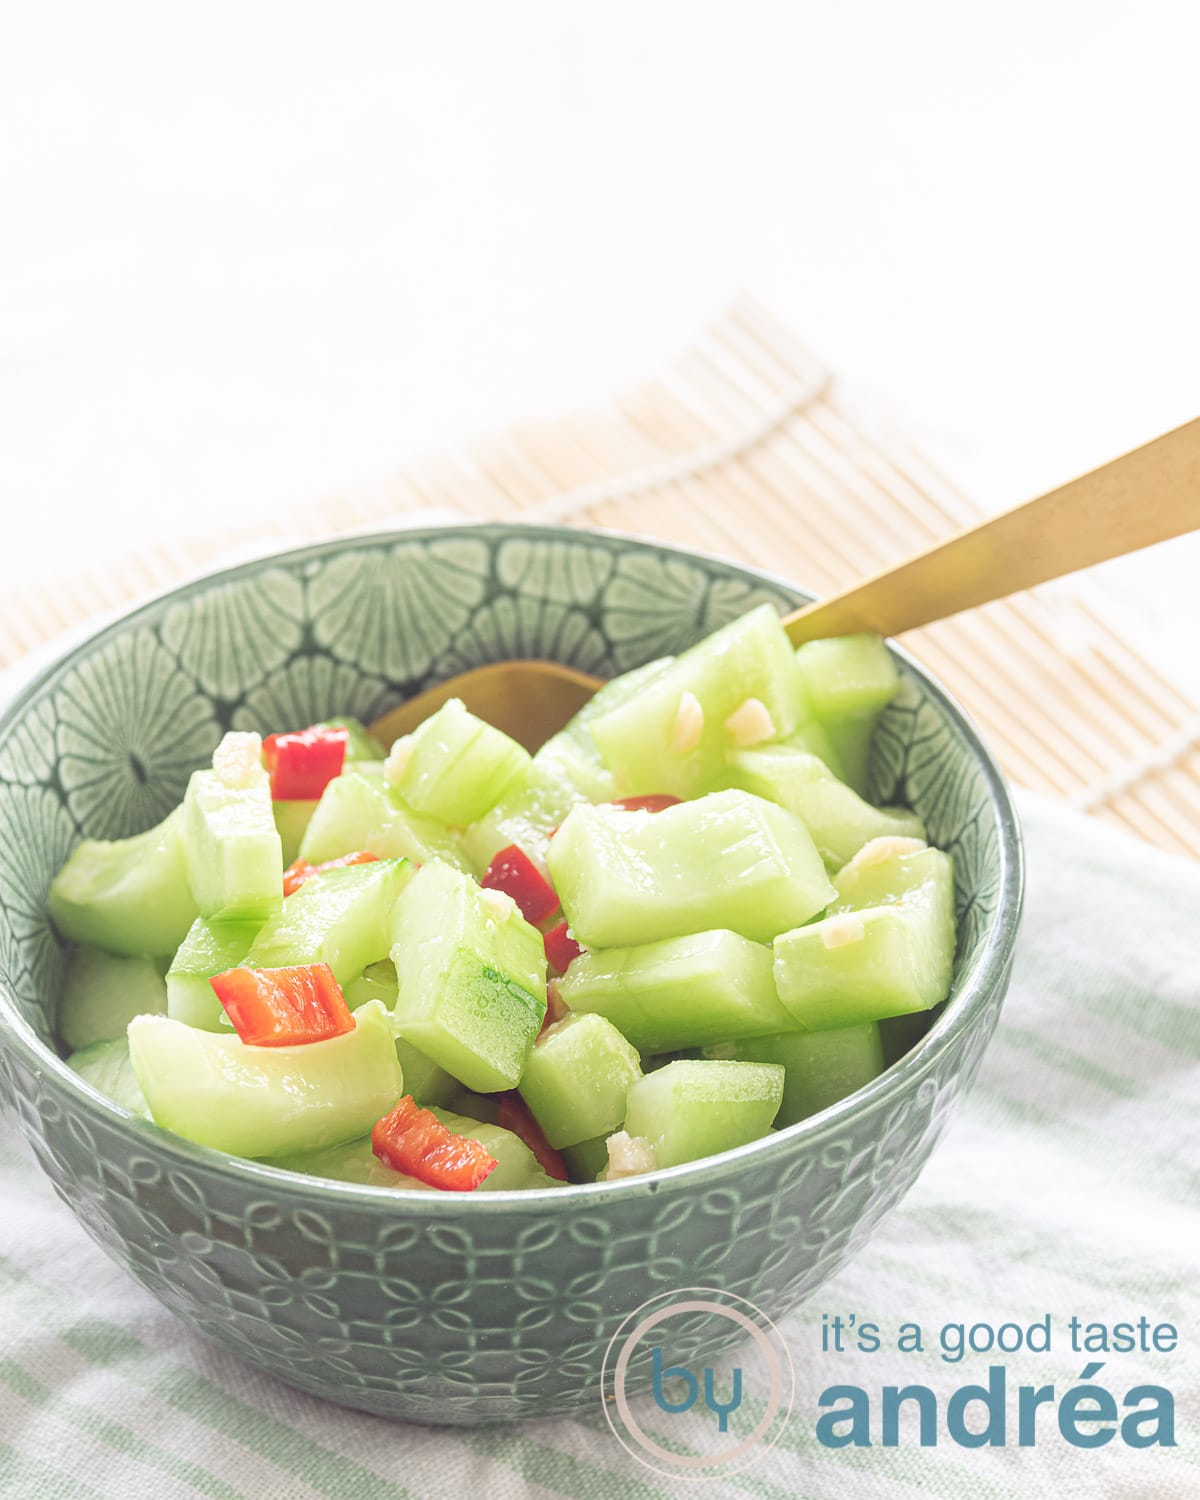 komkommer salade met knoflook en peper - cucumber salad with garlic and pepper